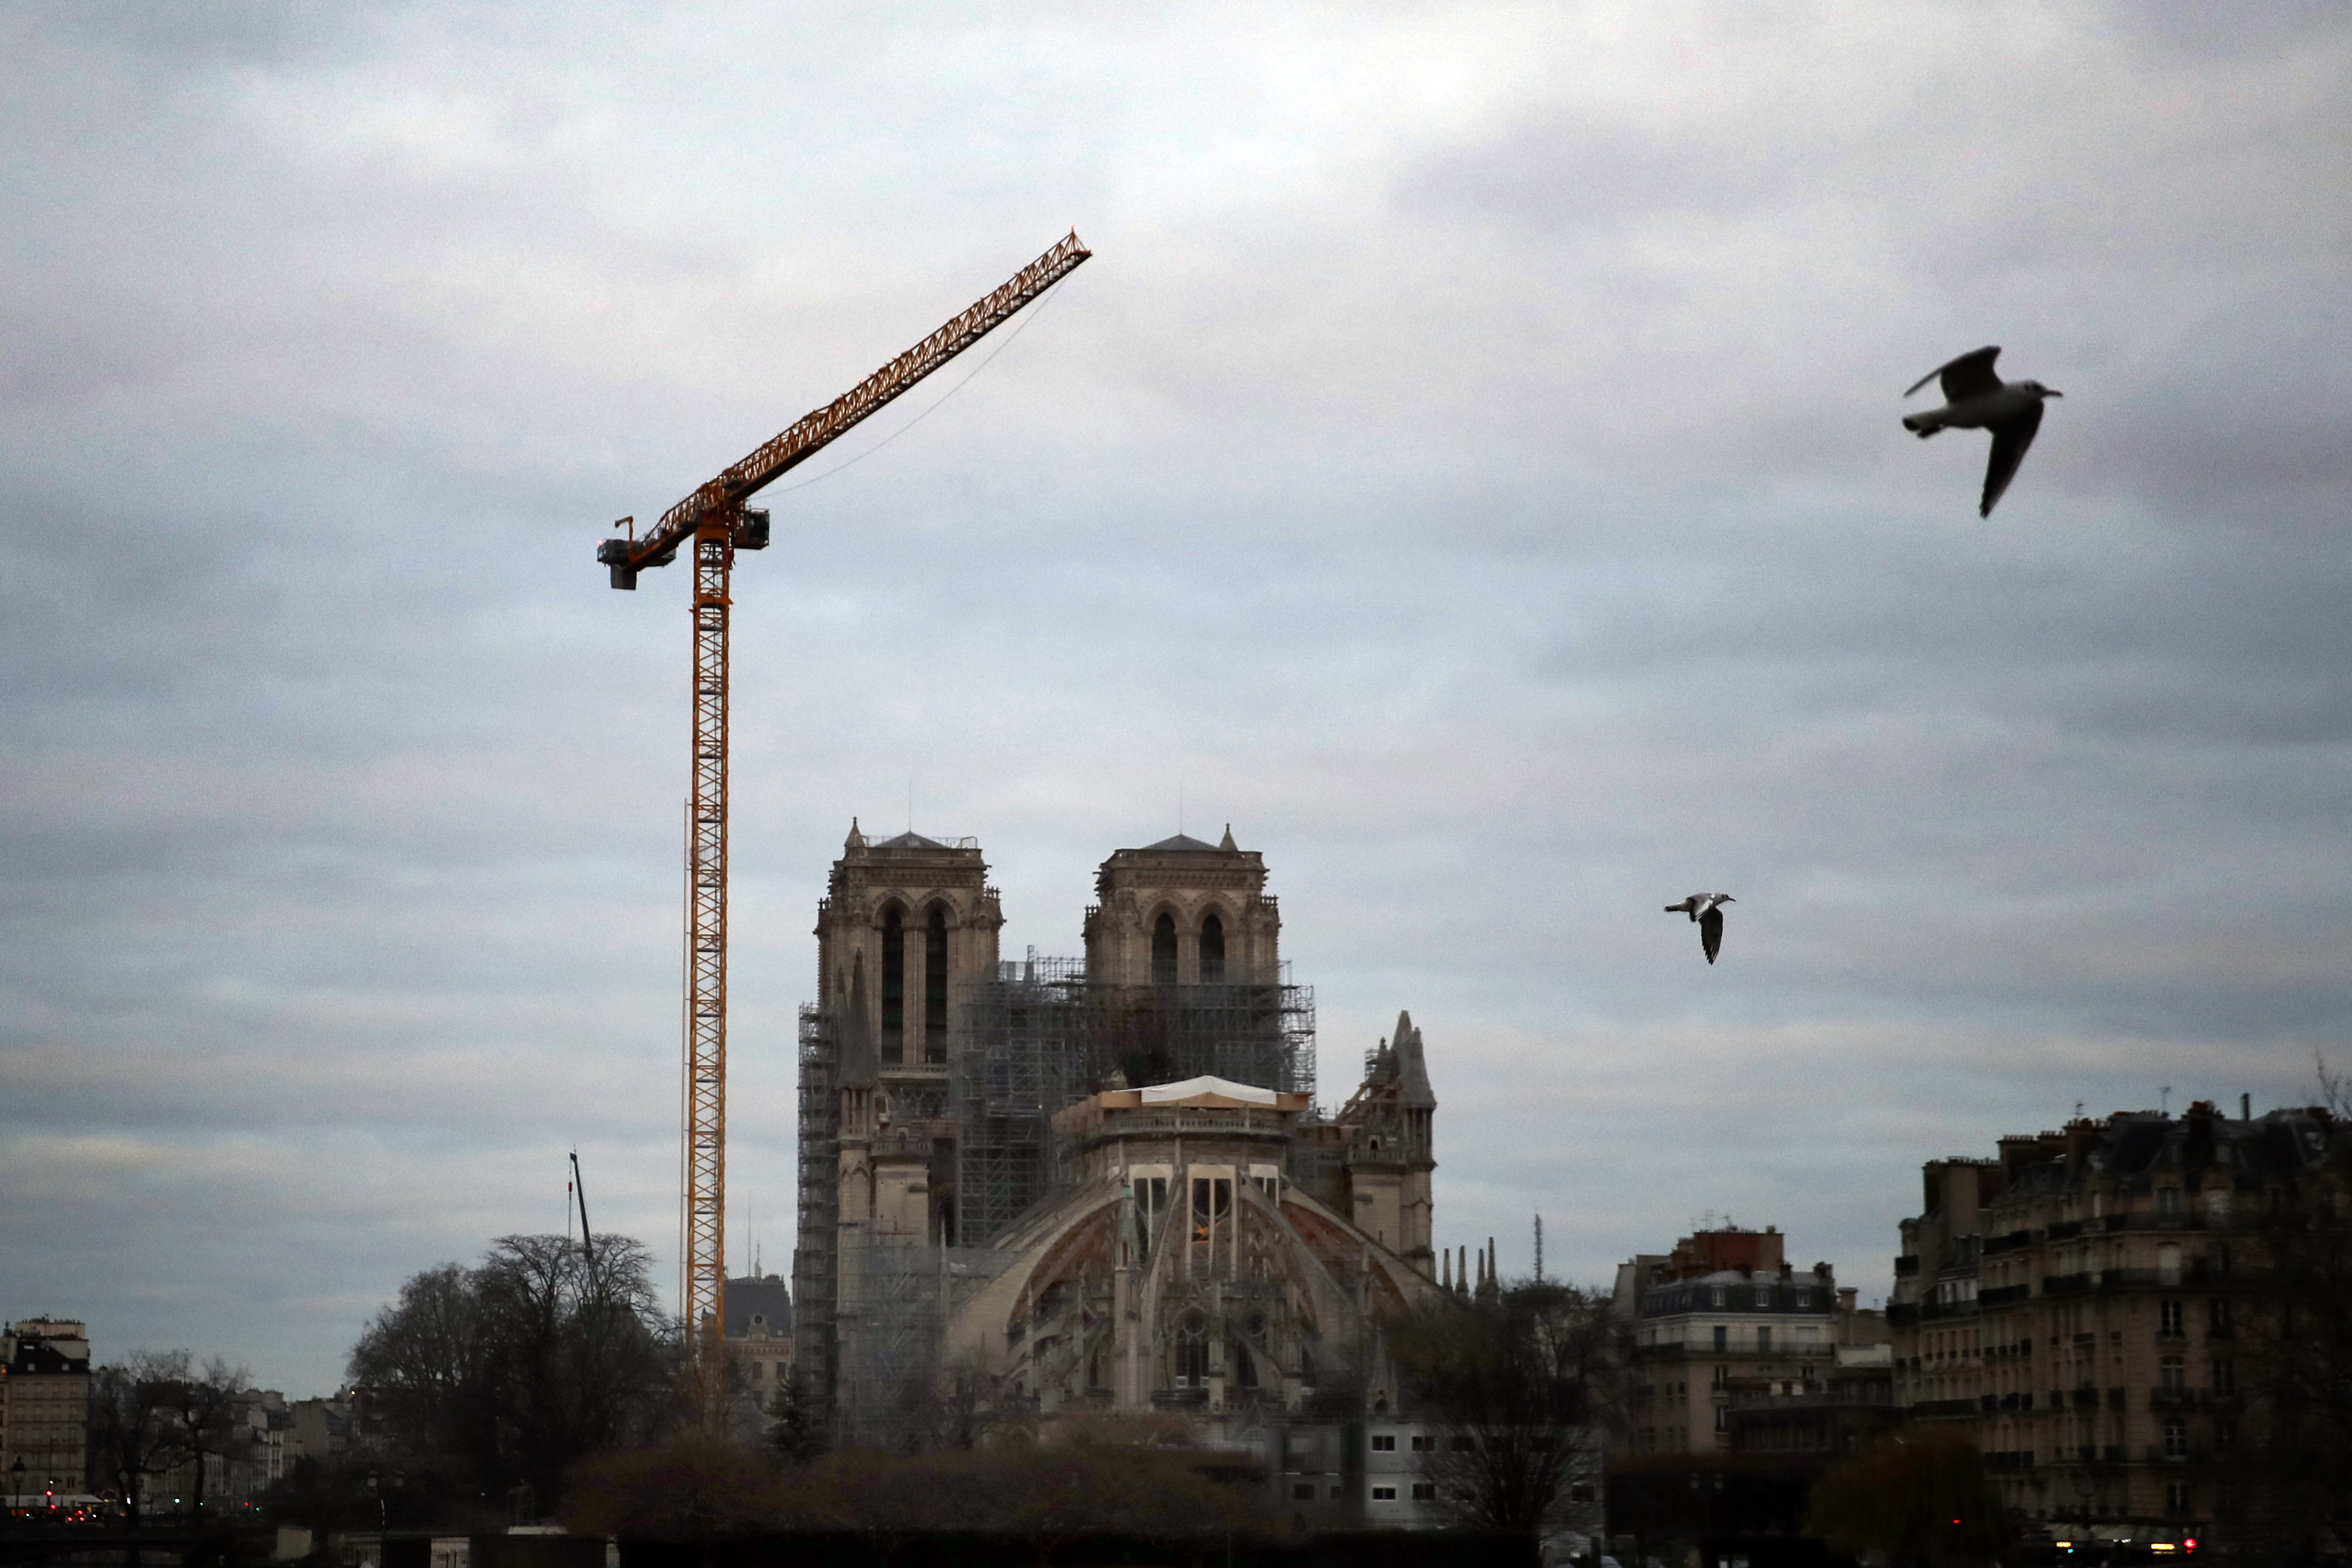 Notre Dame cathedral is pictured in Paris, on Jan. 5, 2020.